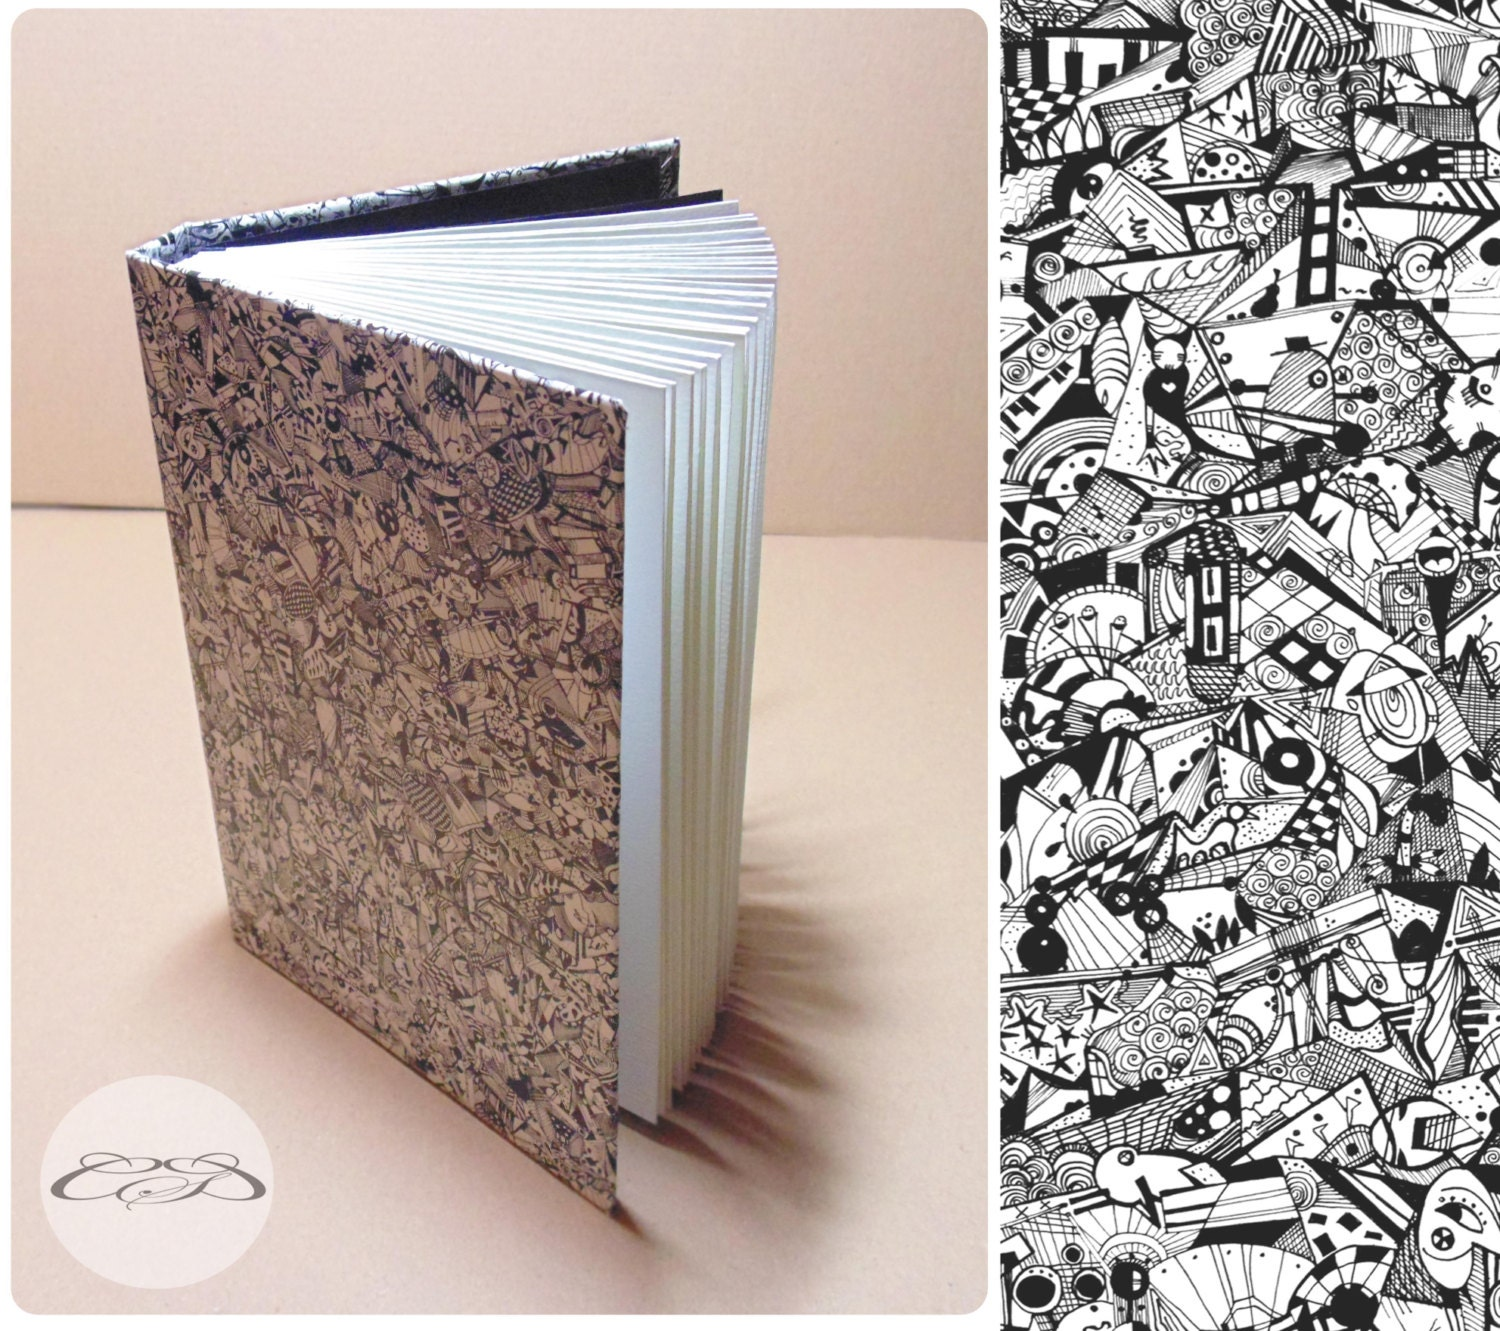 Drawing Book Cover Design Handmade : Handmade book cover designs imgkid the image